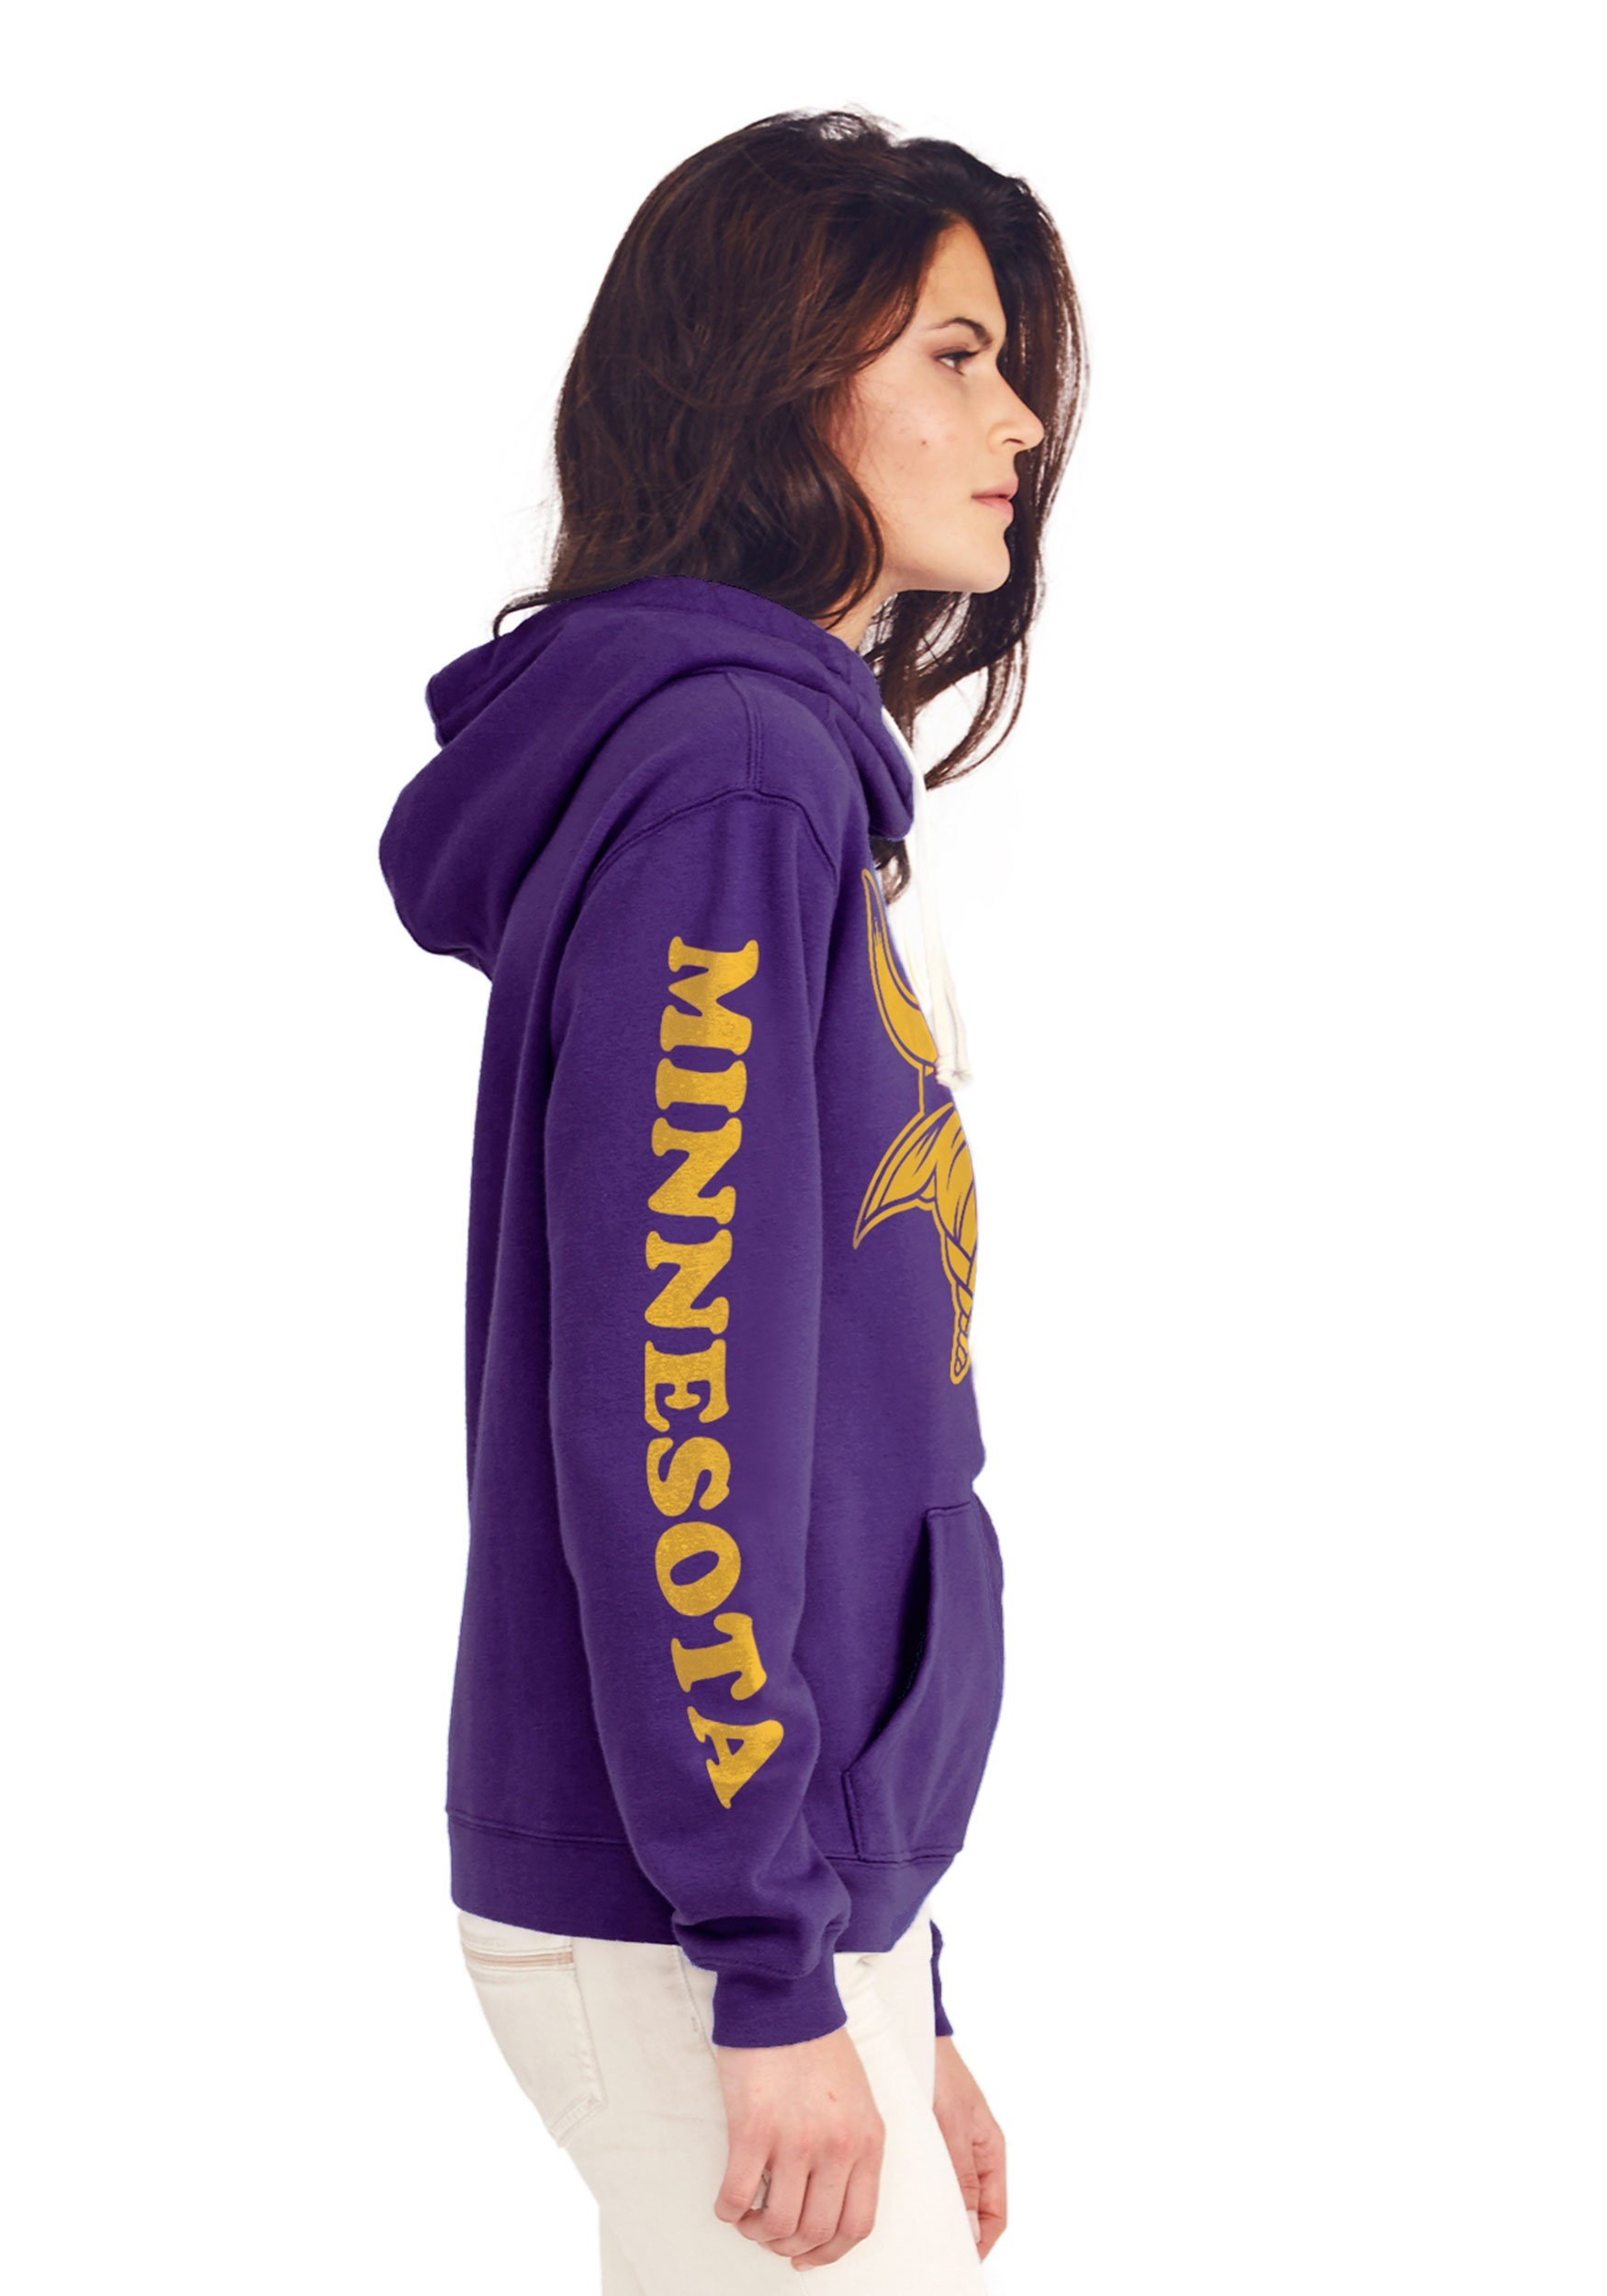 competitive price c234a 0dde6 Minnesota Vikings Women's Cowl Neck Hooded Sweatshirt